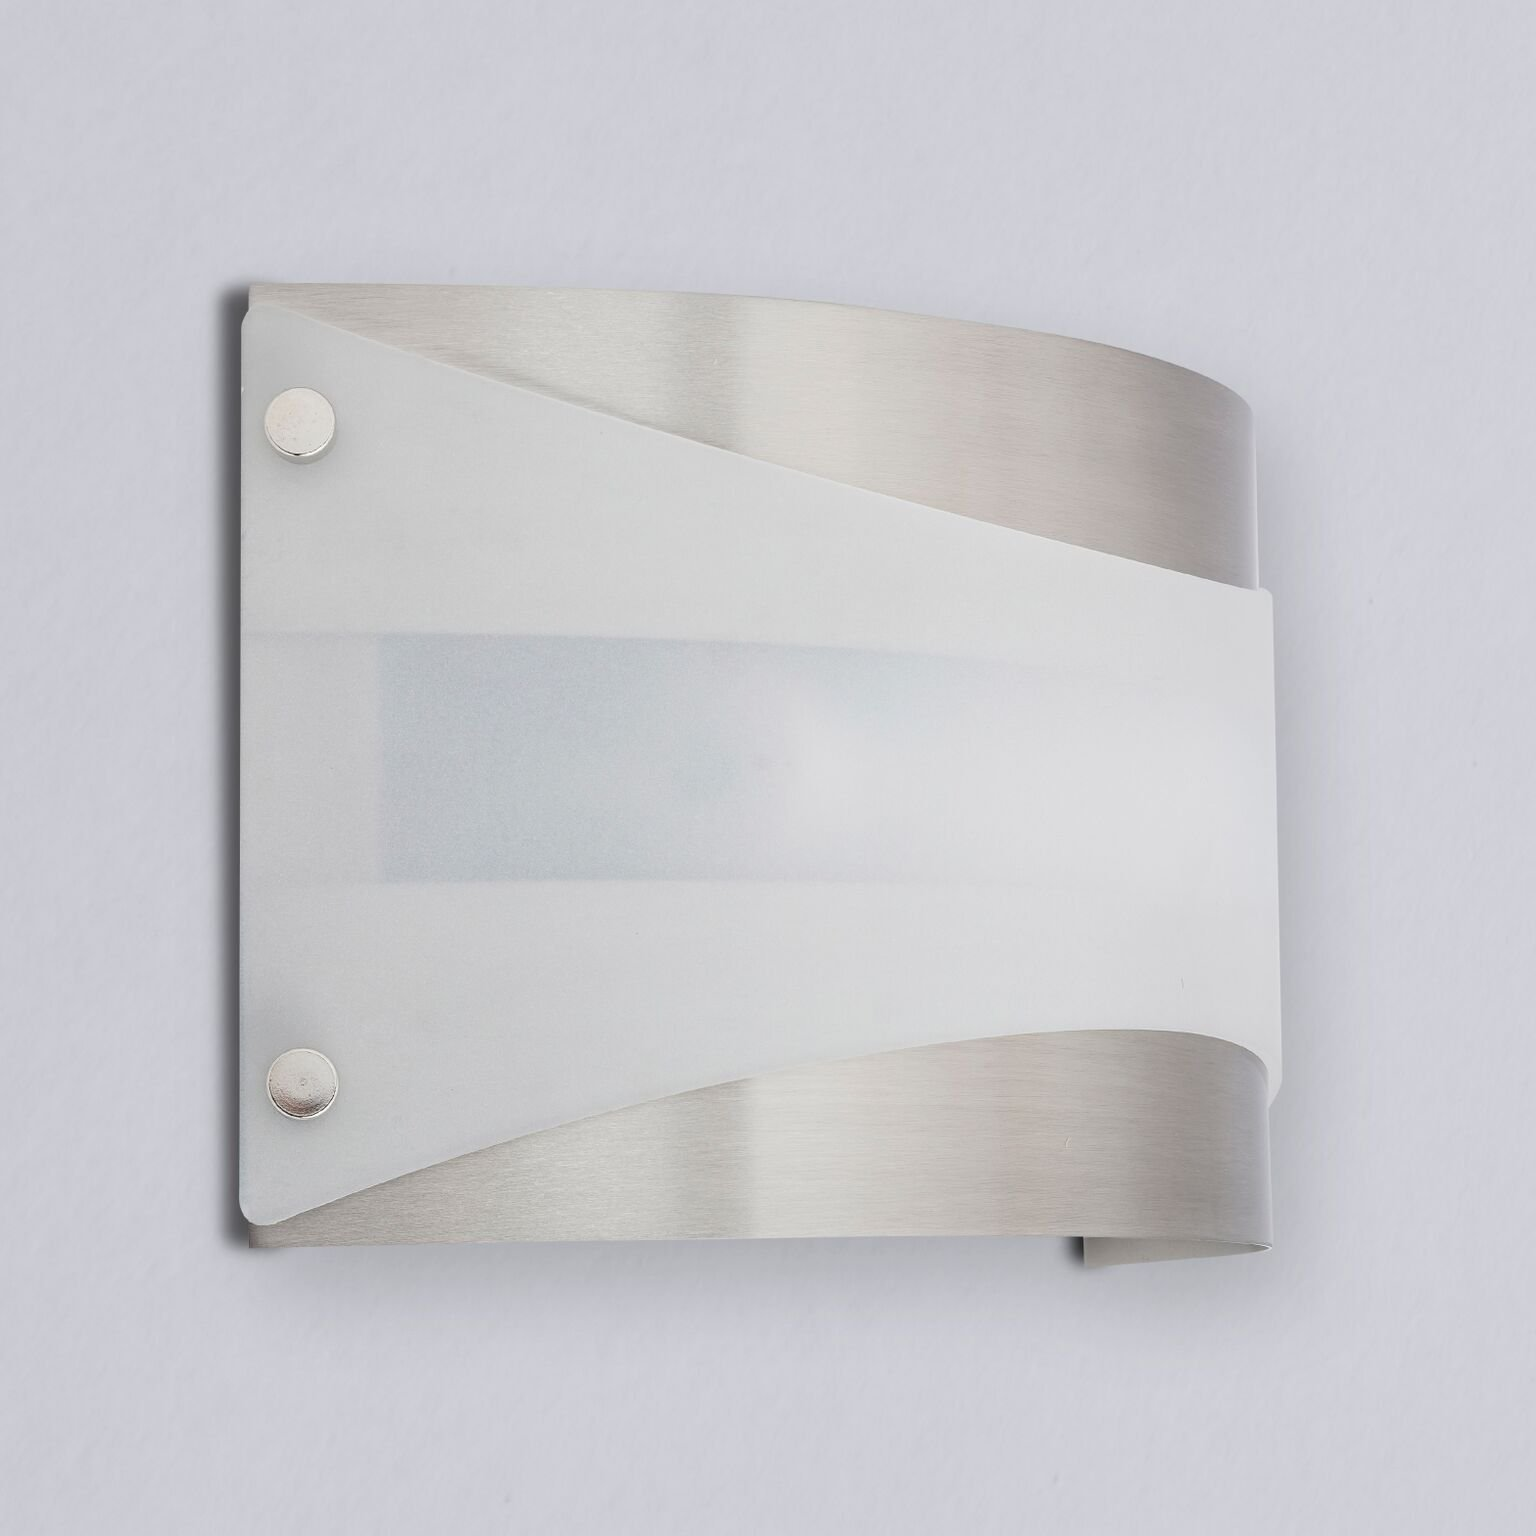 Acciaio Wall Sconce One-Light Lamp Brushed Nickel with White Diffuser - Linea di Liara LL-SC6-BN by Linea di Liara (Image #5)